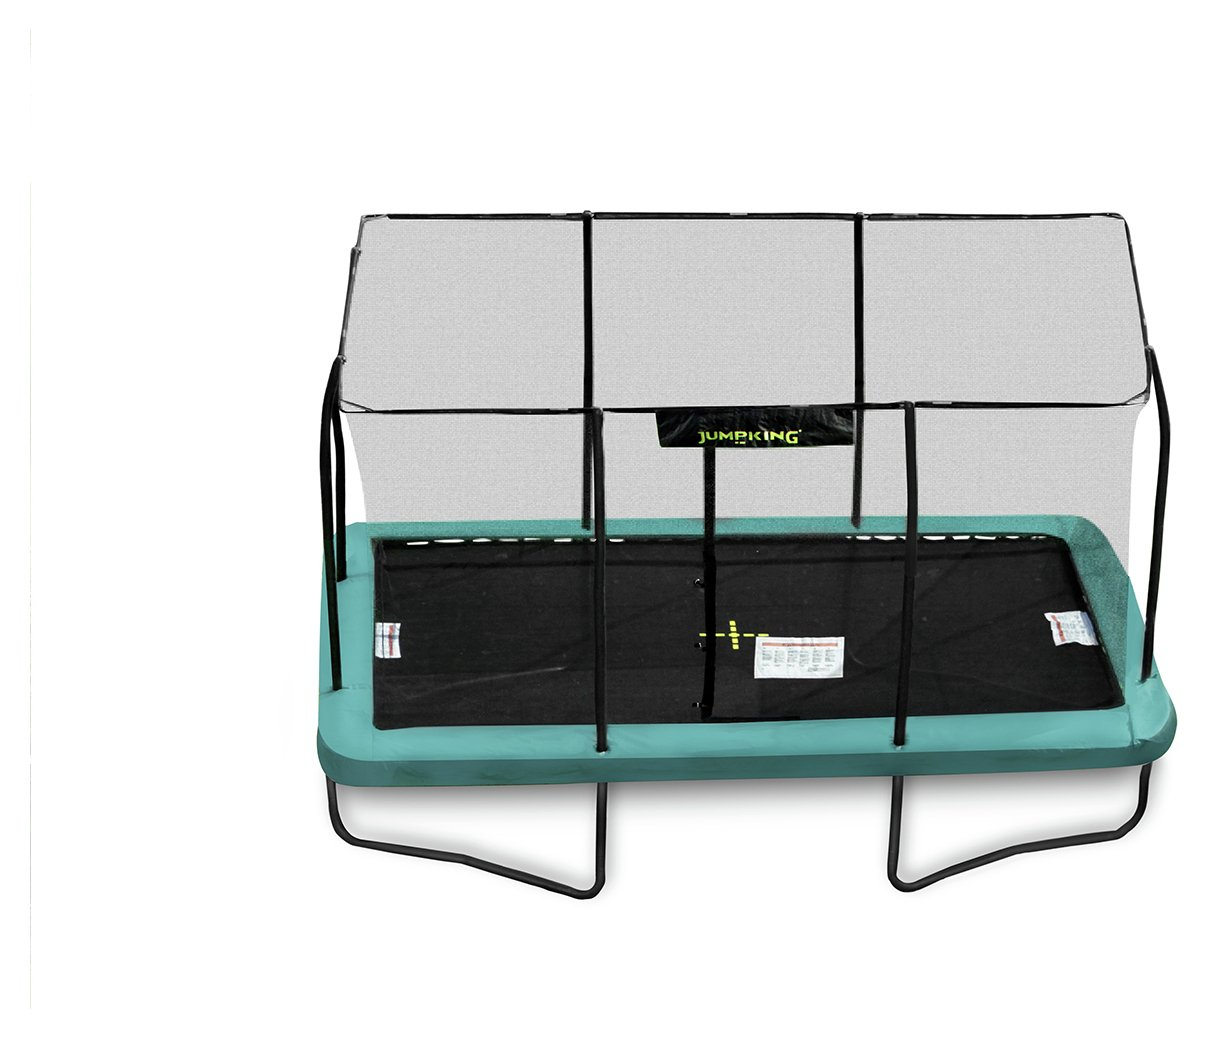 Jumpking 8ft x 12ft Rectangular Trampoline with Enclosure